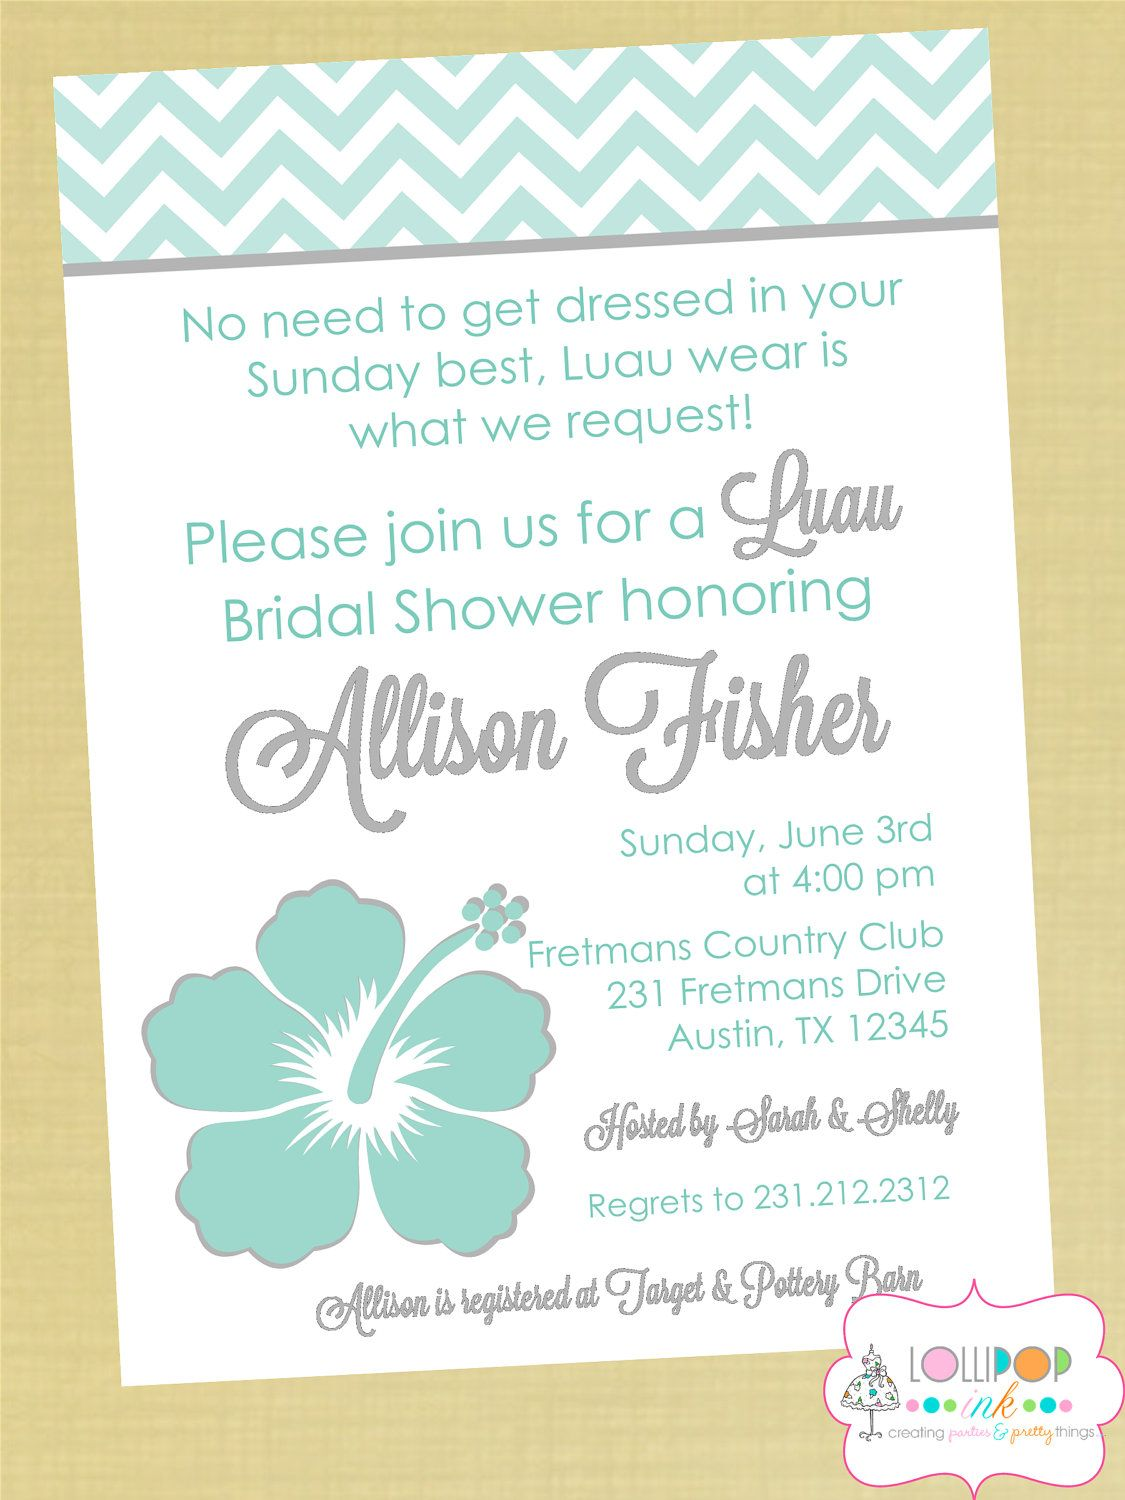 Luau shower invitations invitationjpg luau bridal shower printable party invitation by lollipopink filmwisefo